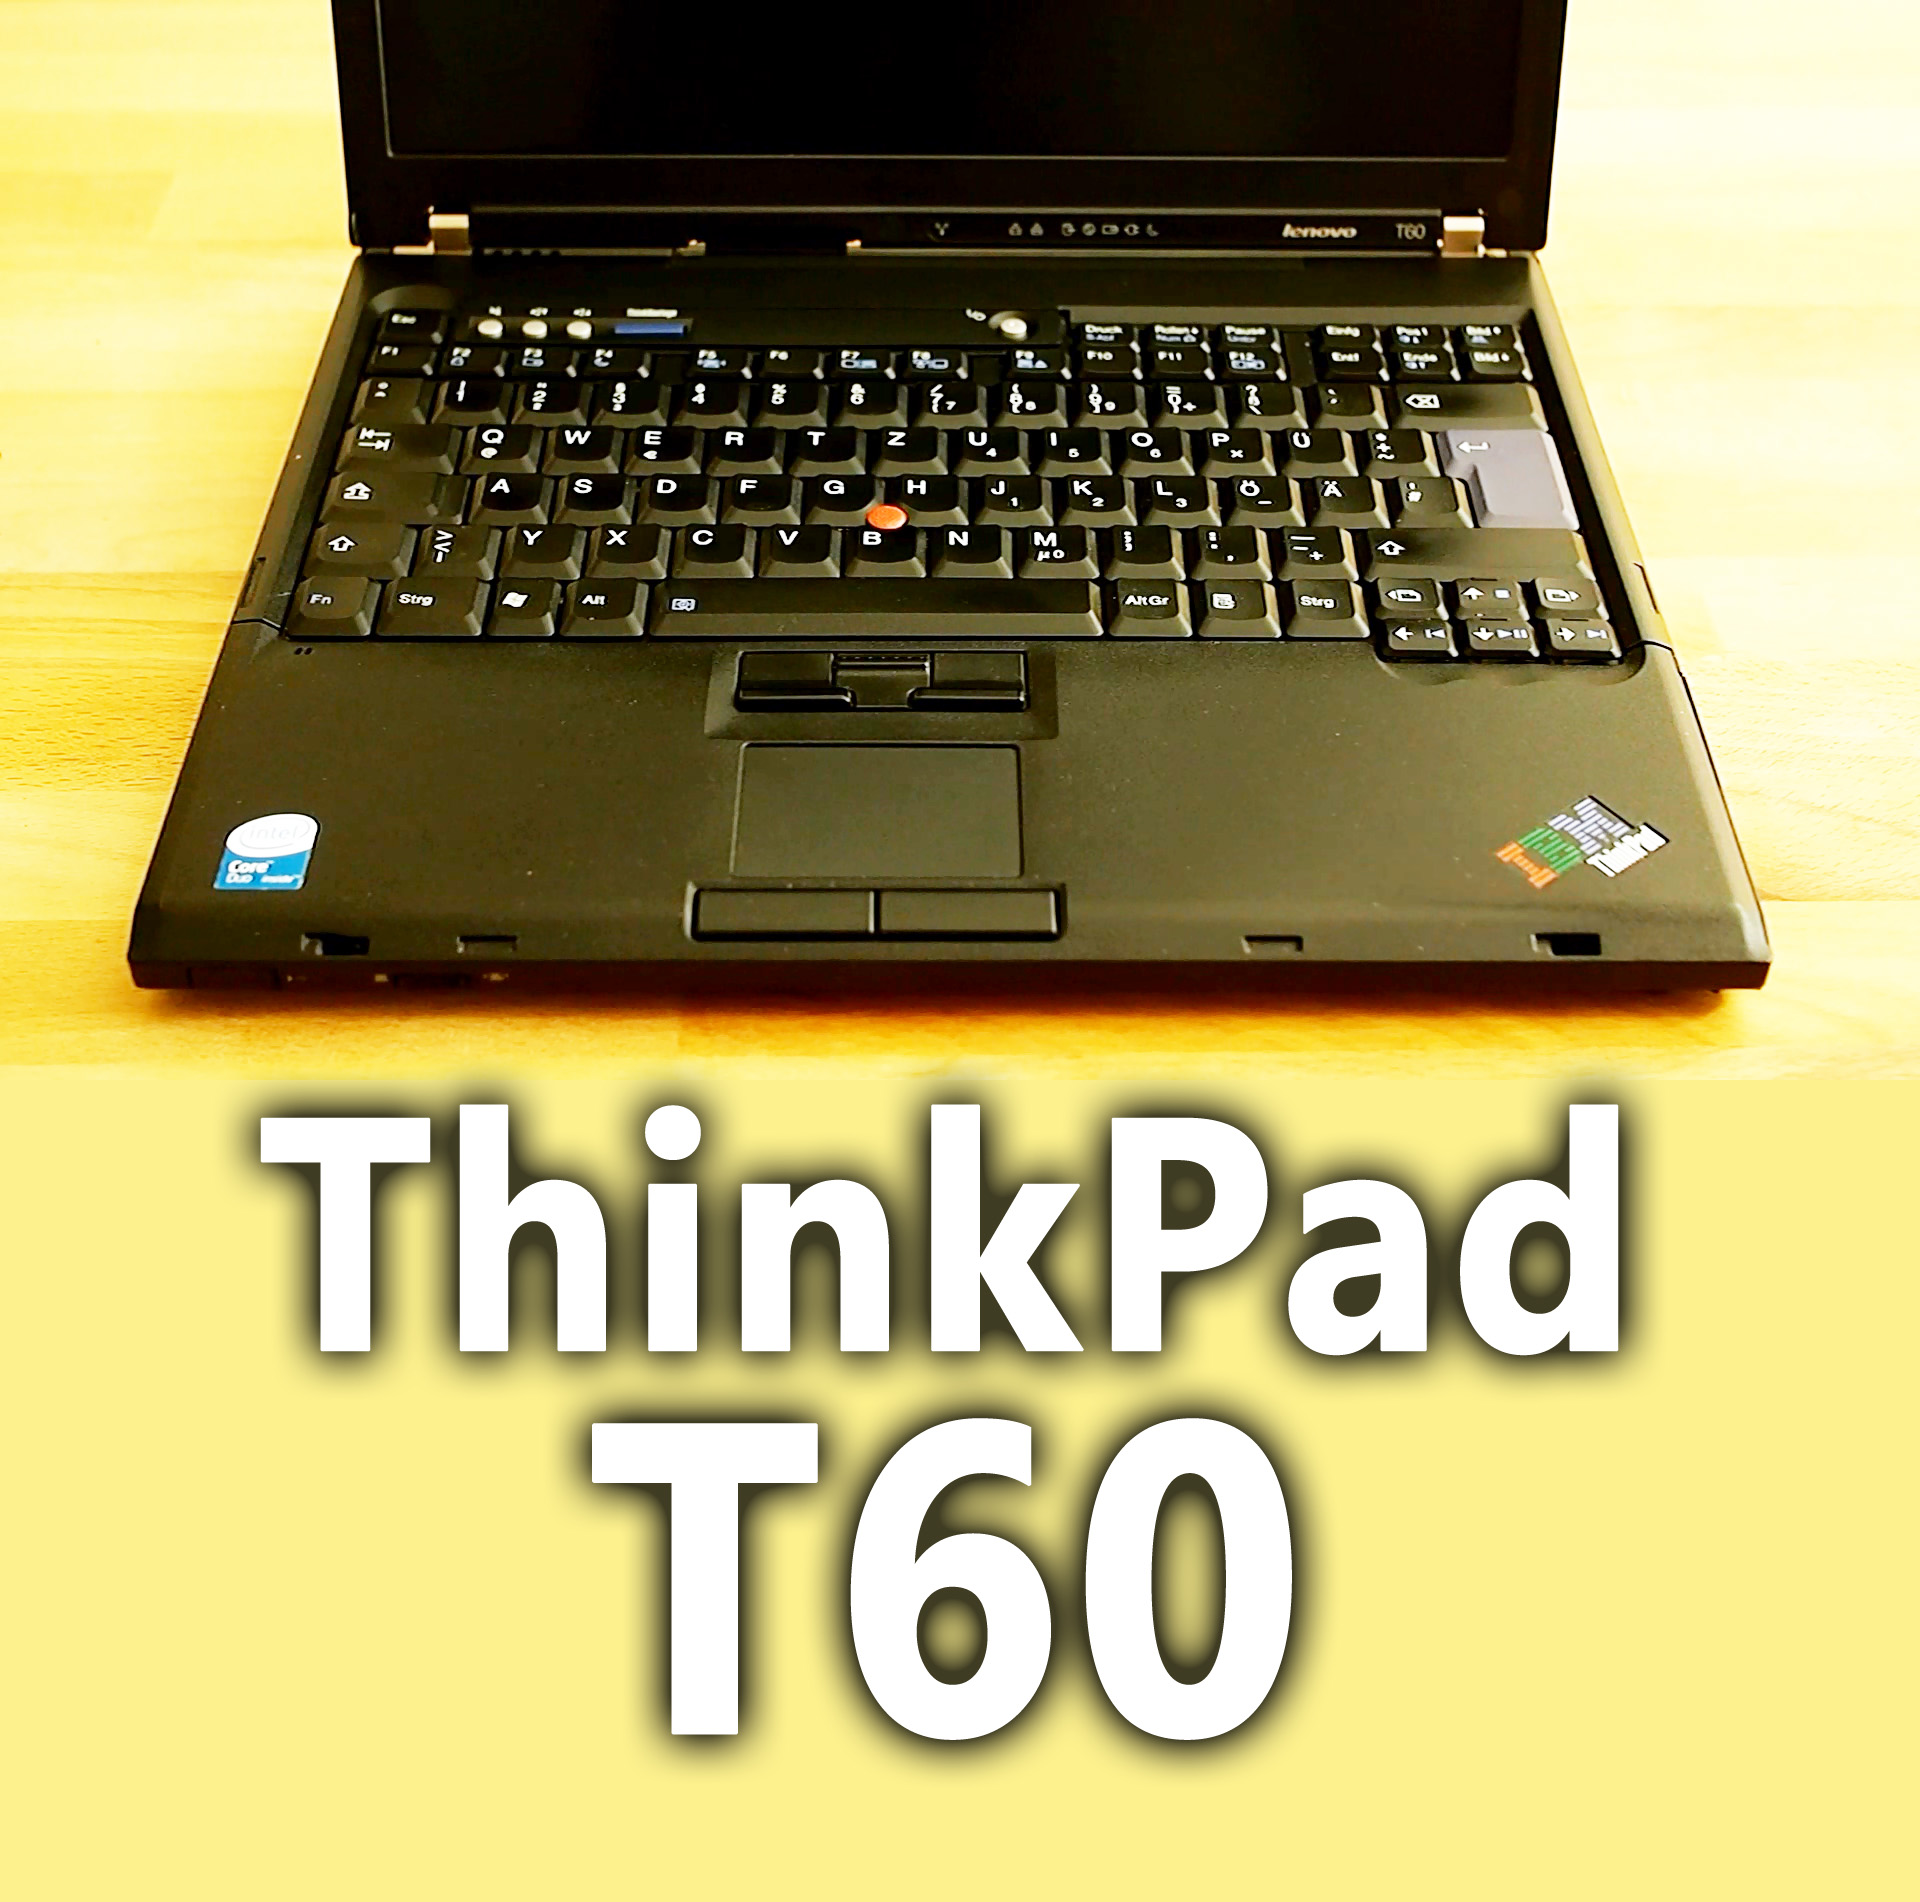 ThinkPad T60 – greatest work laptop? – PANORAMA CIRCLE